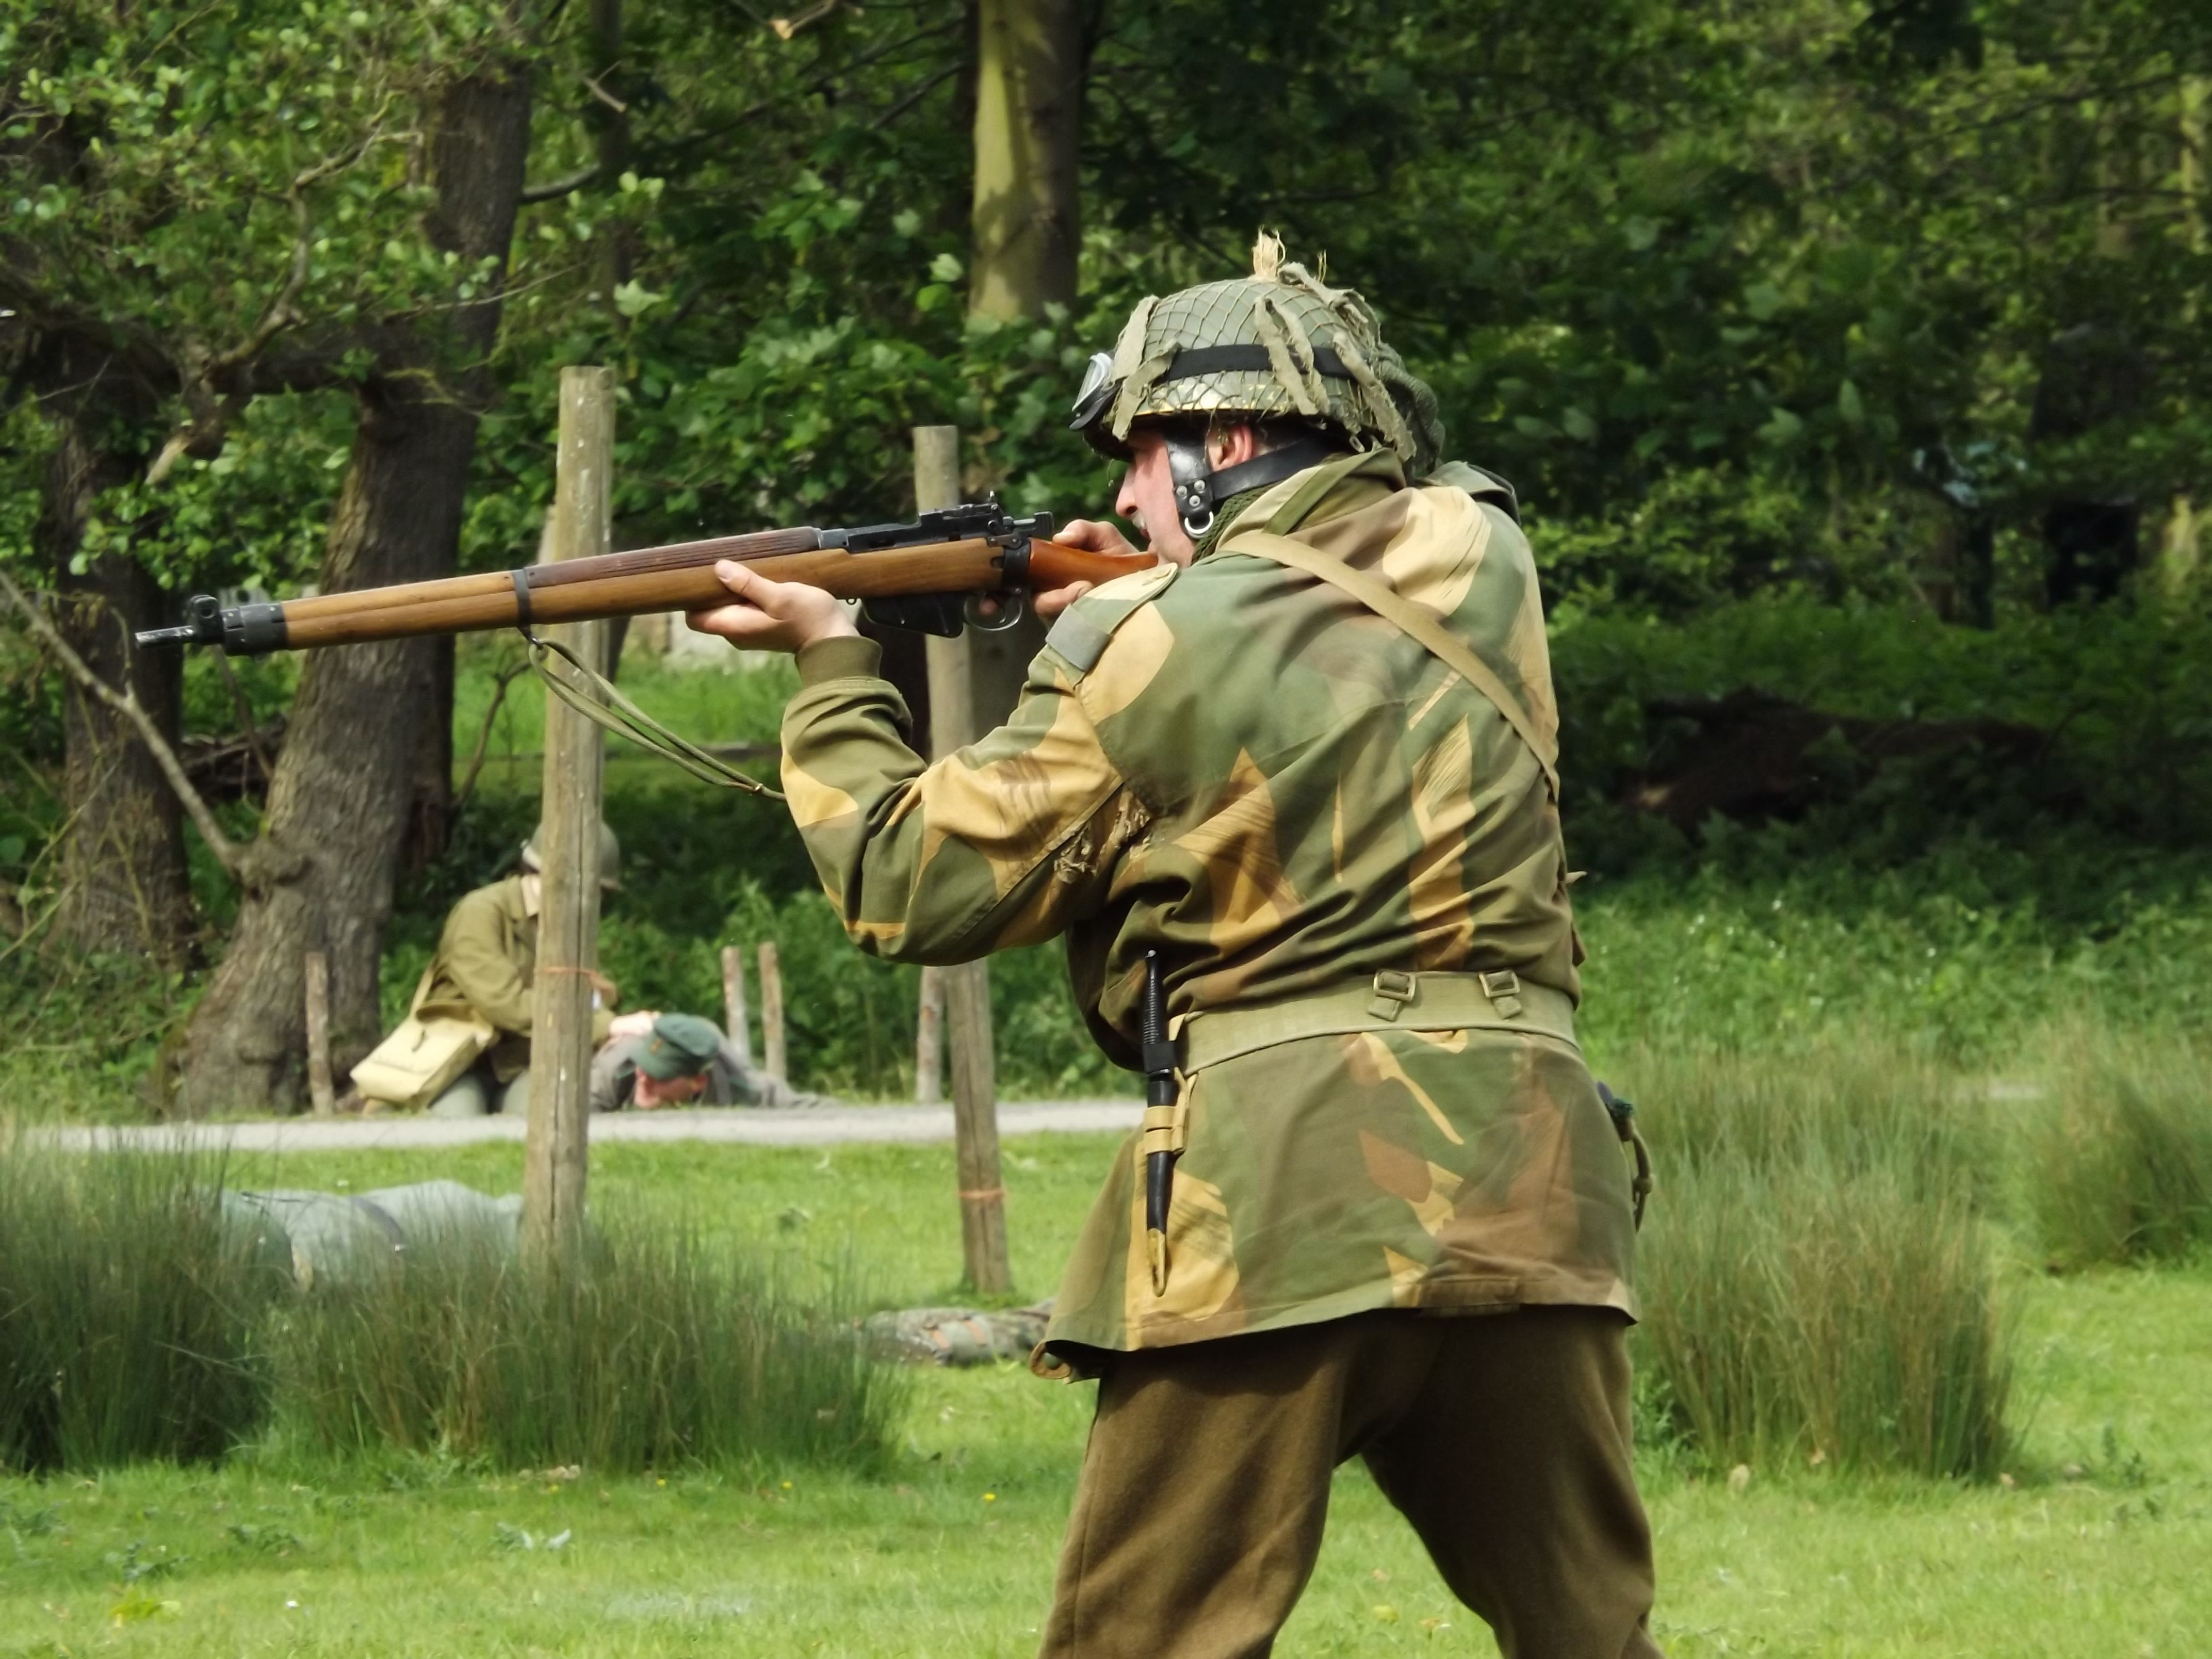 Day reenactment ww ii pictures pinterest - British Airborne With His No 4 Lee Enfield 303 Bolt Action Rifle